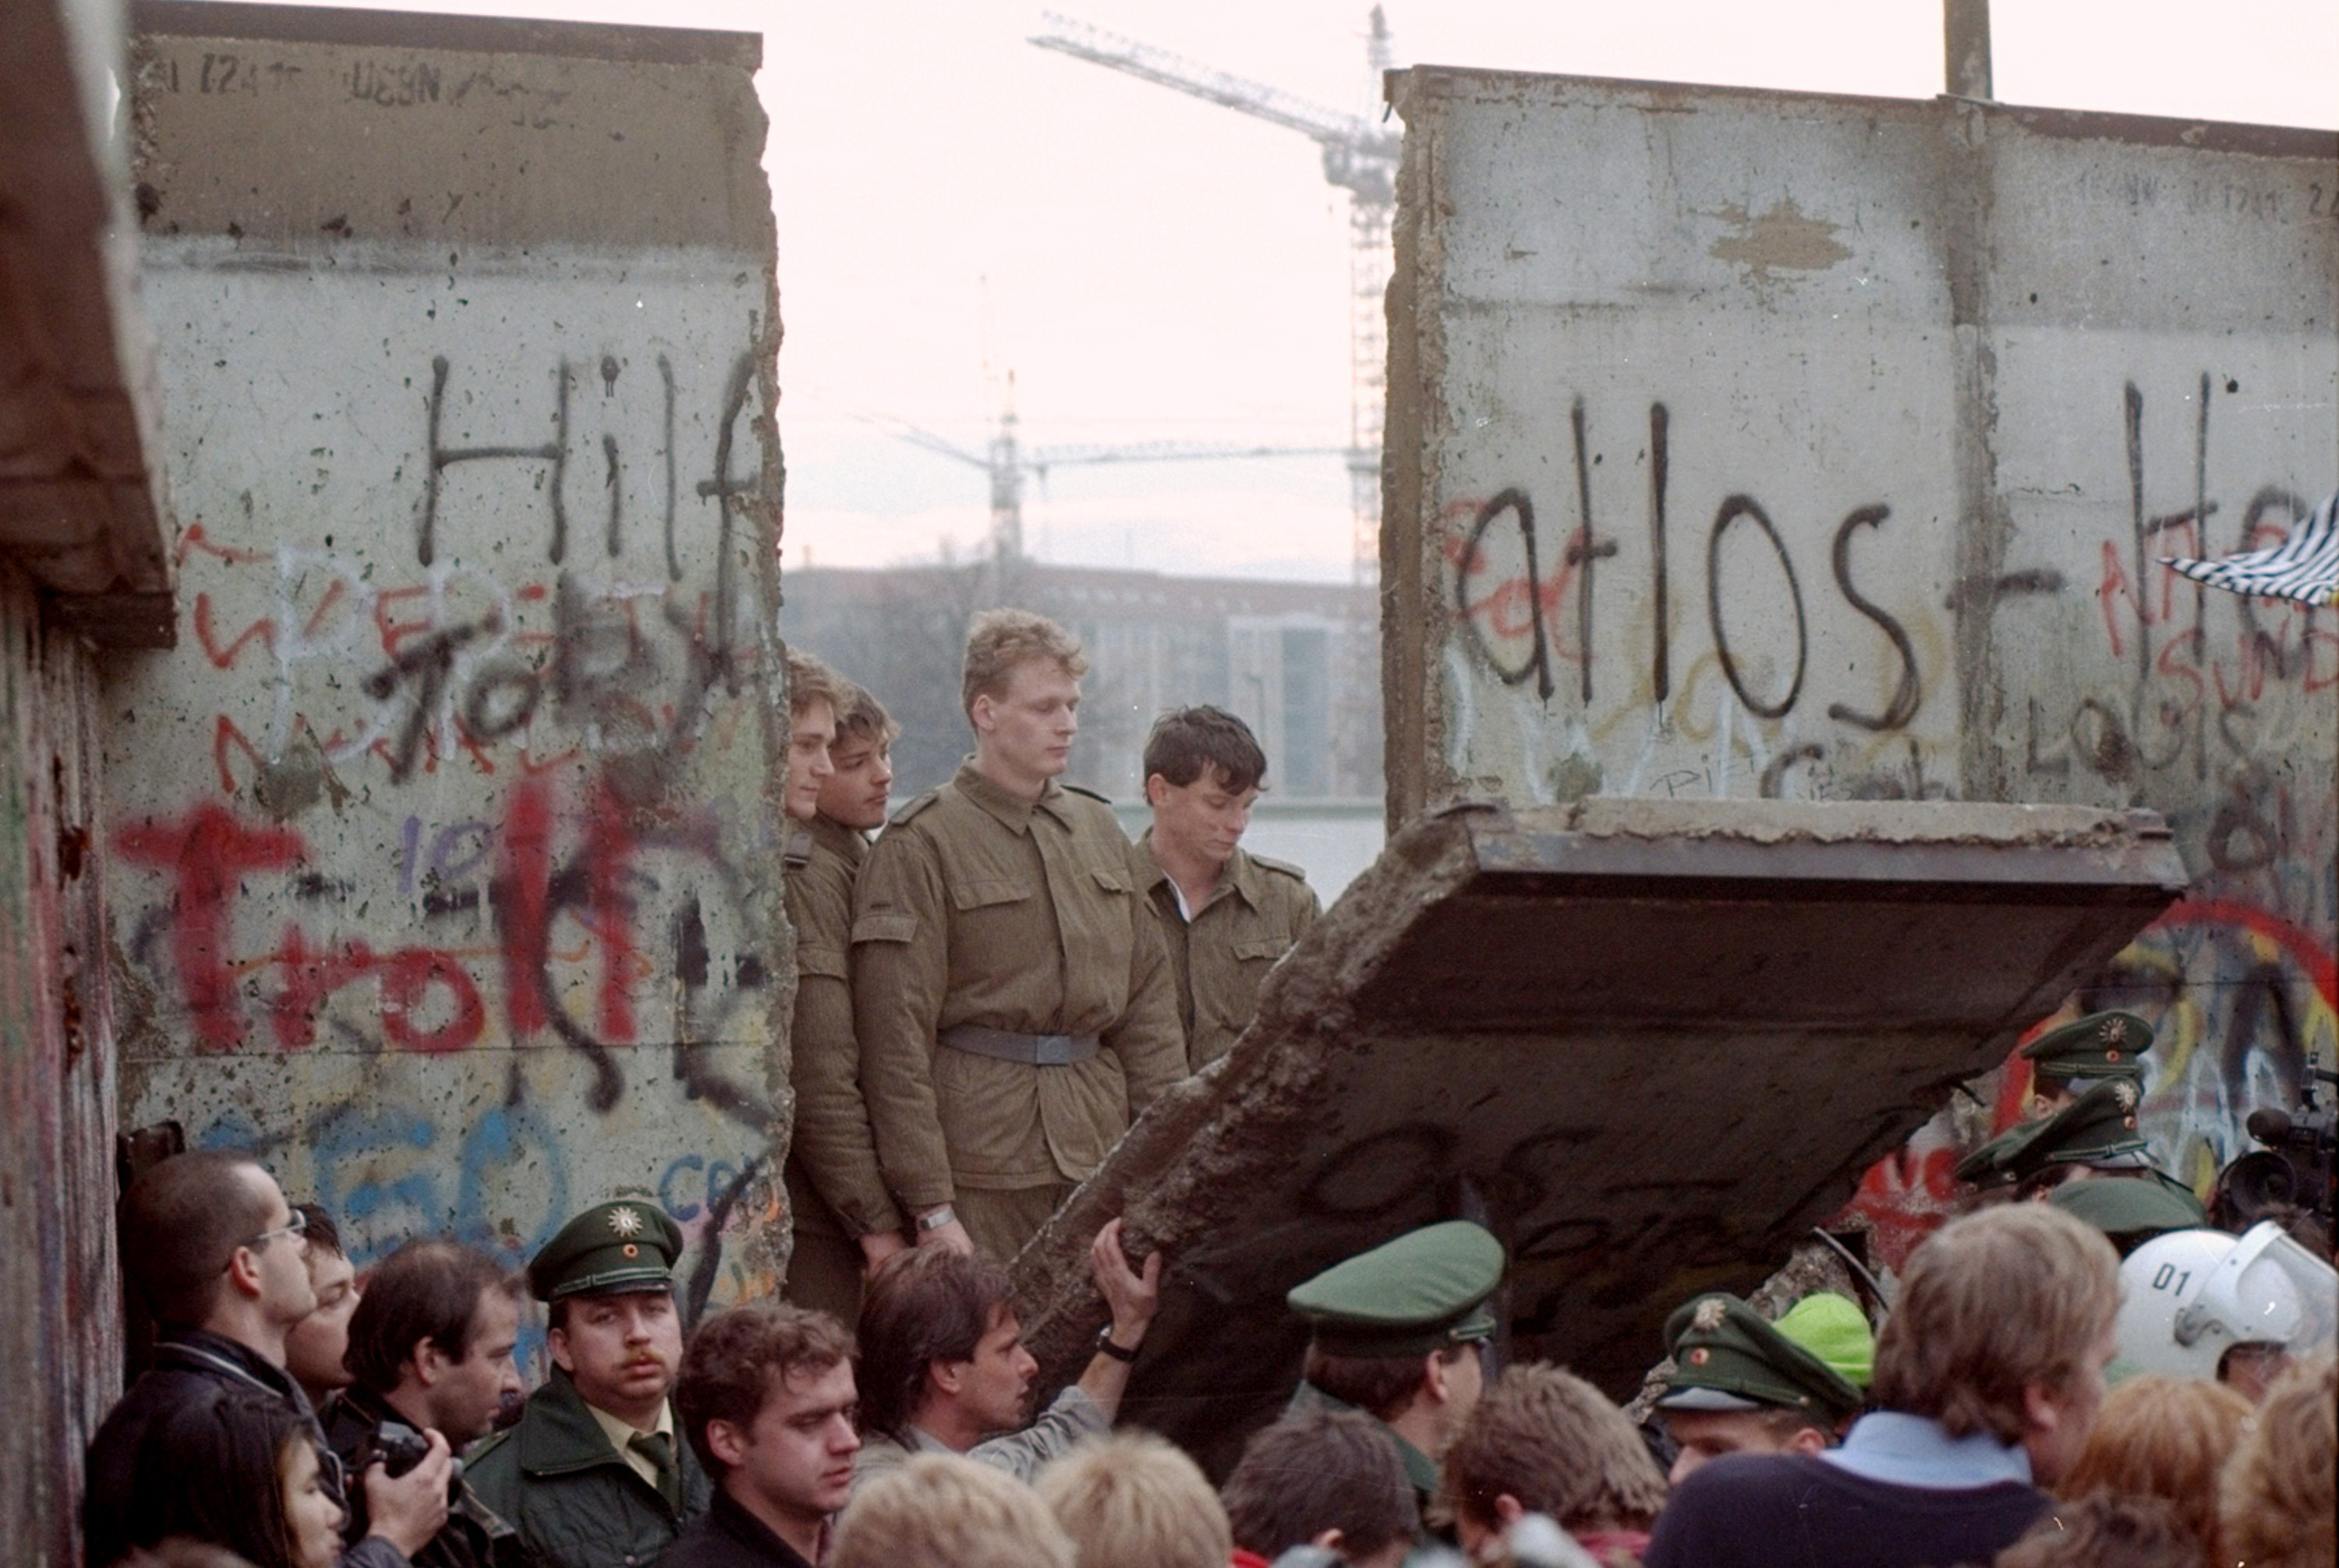 FILE - In this Nov. 11, 1989 file photo, East German border guards are seen through a gap in the Berlin wall after demonstrators pulled down a segment of the wall at Brandenburg gate, Berlin. The Berlin Wall is gone, but people can still tag their memories upon it online. The Berlin Twitter Wall, which went online Tuesday, Oct. 20, 2009 encourages people to share their memories of the wall's collapse and hopes for the future on a scrolling wall using Twitter, the social networking site.